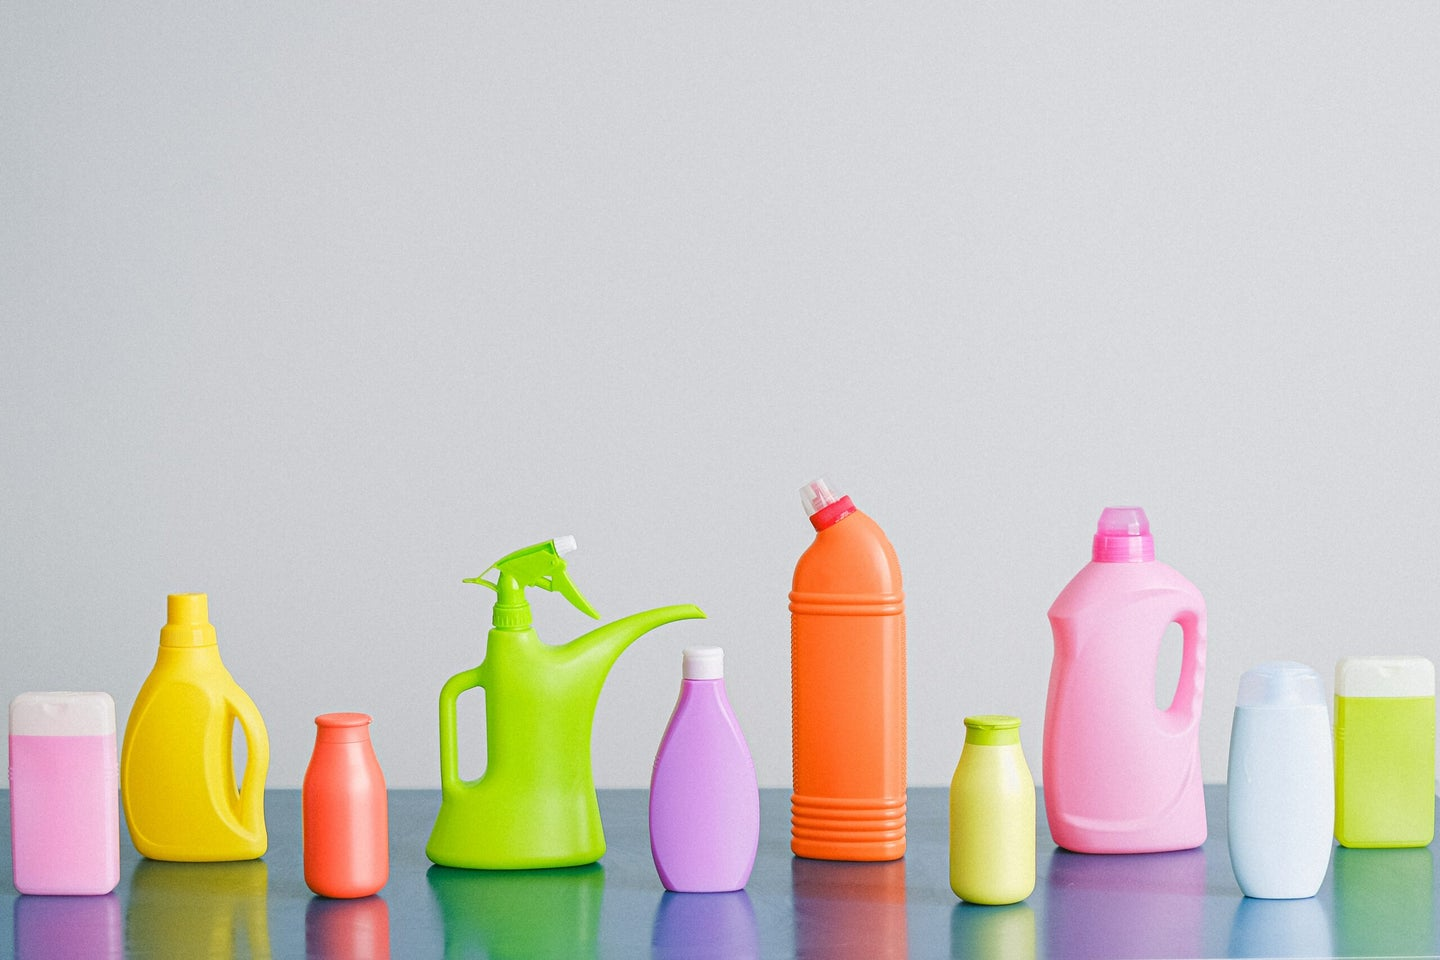 Colorful cleaning products on blank background.